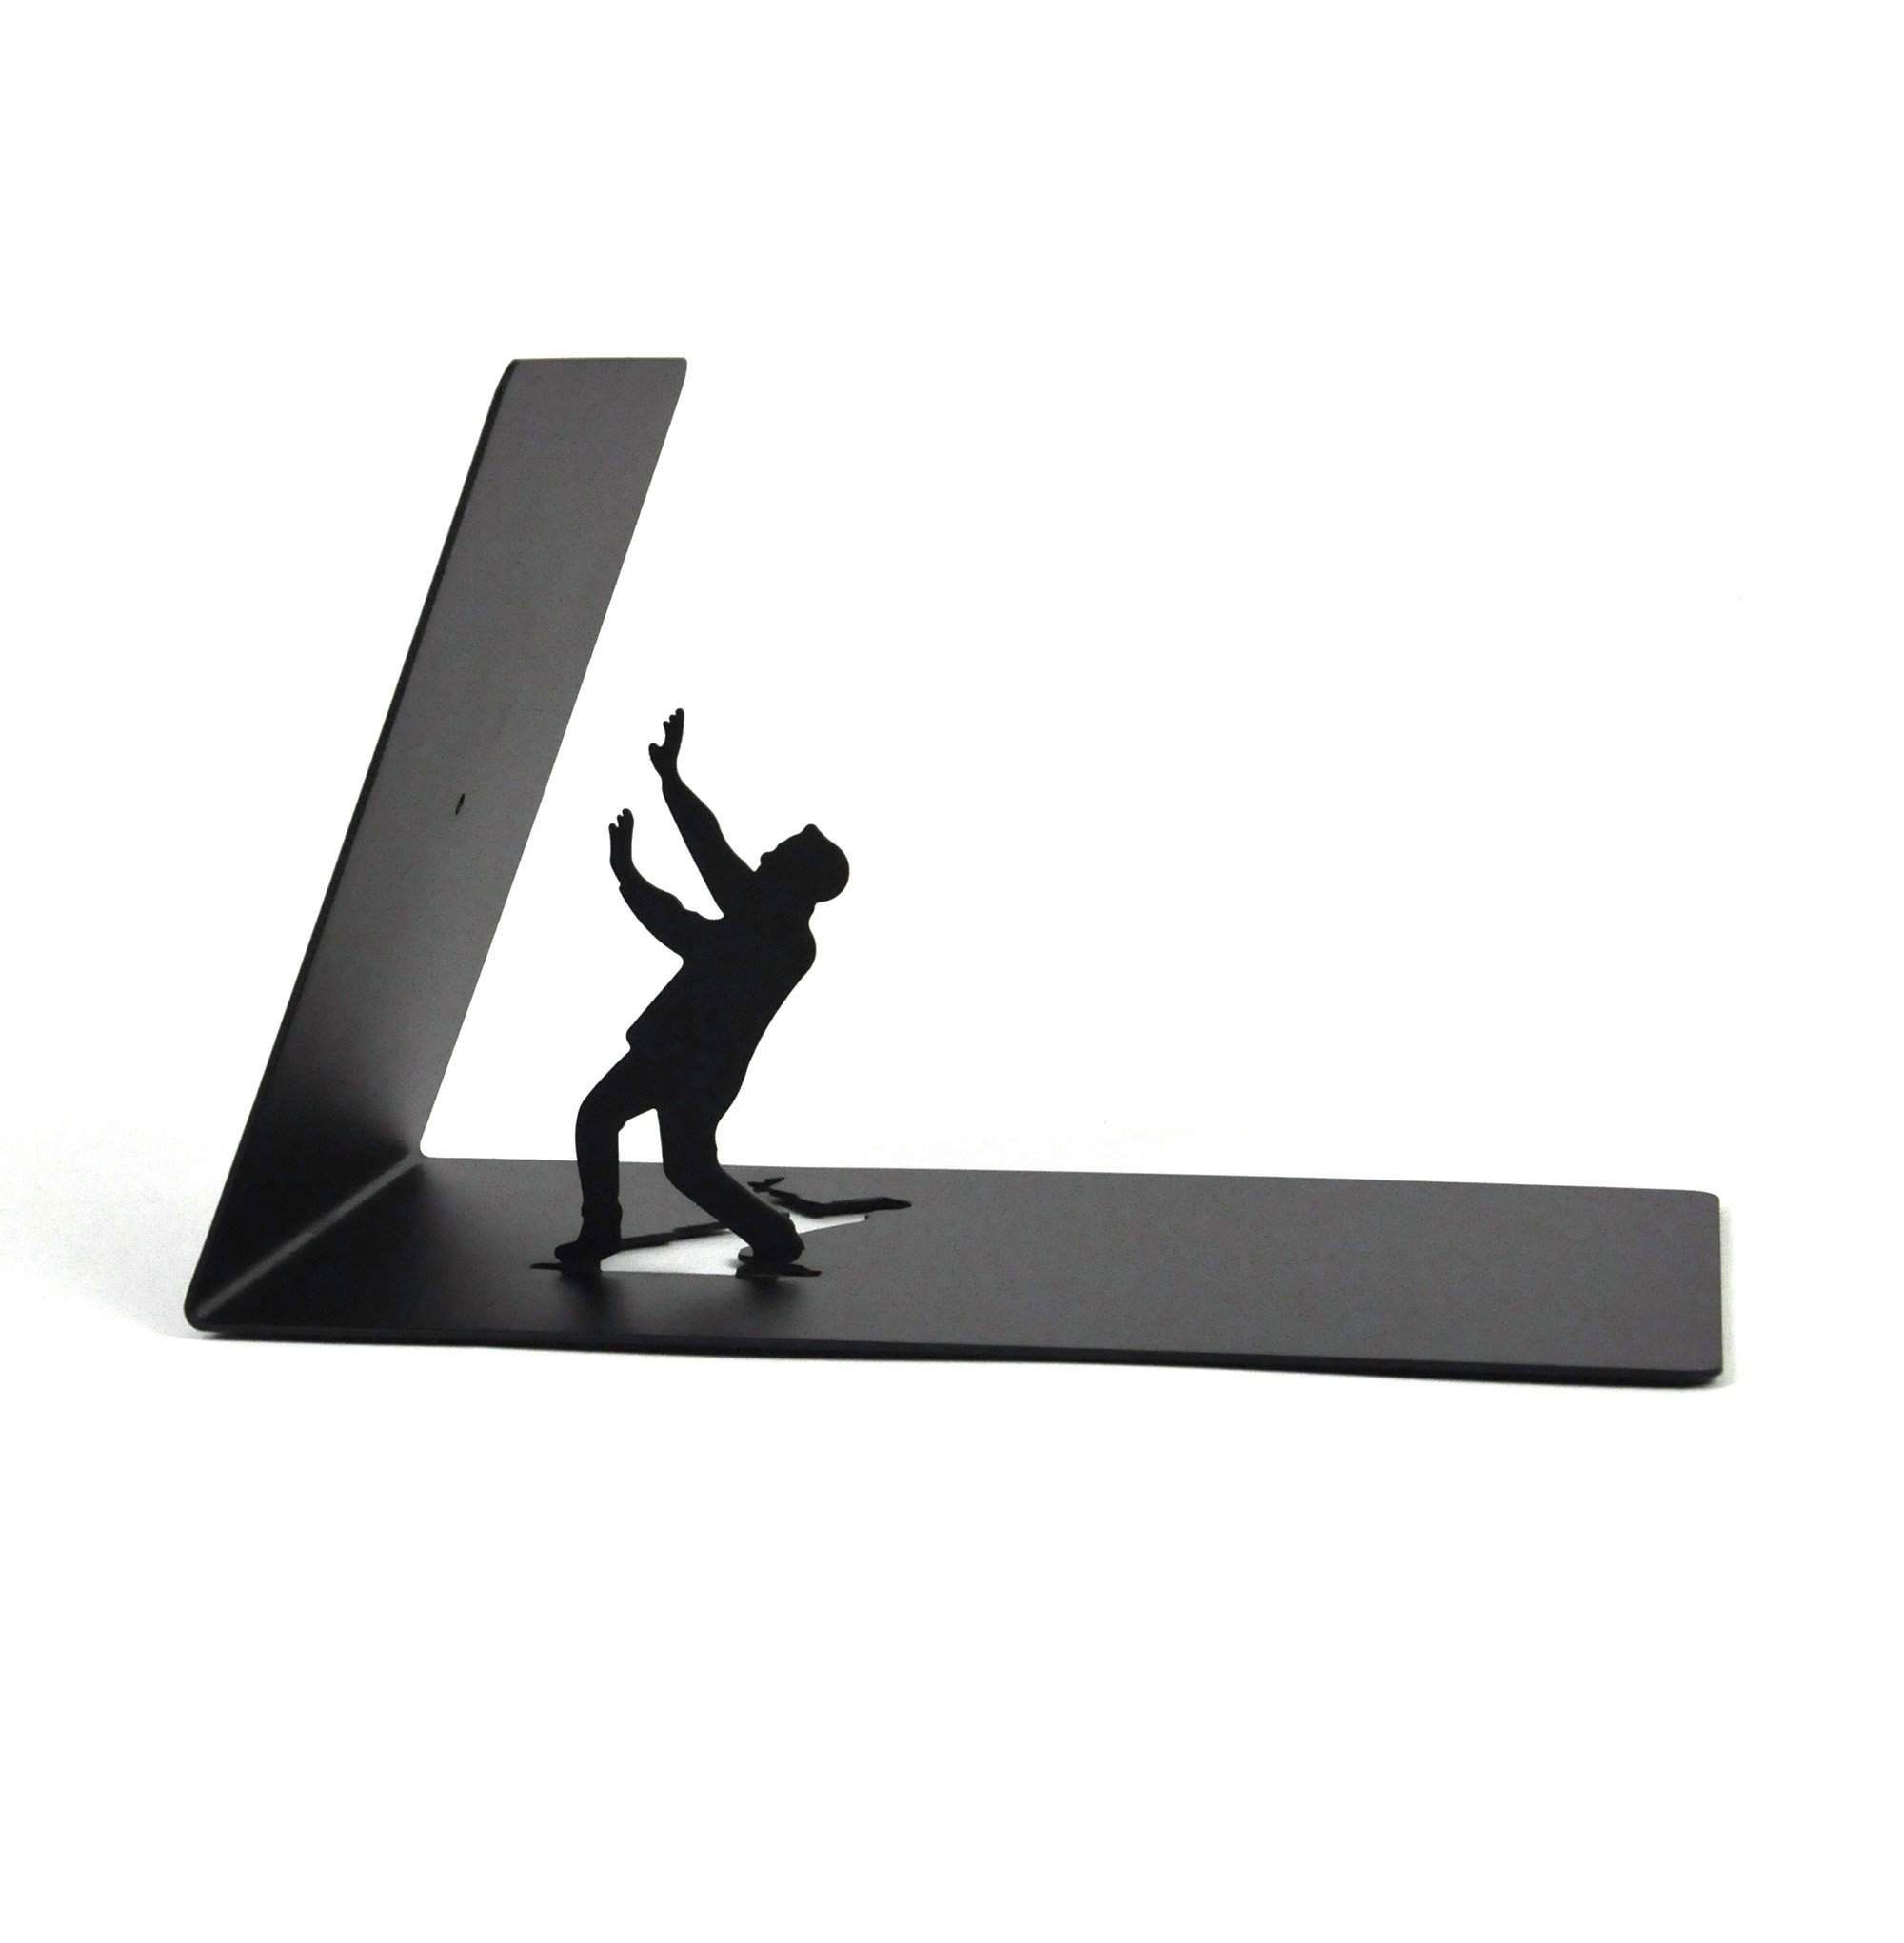 Artori Design | Falling Bookend | Falling Books Black Metal Bookend | Cool Bookends | Decorative Art | Book Stopper | The